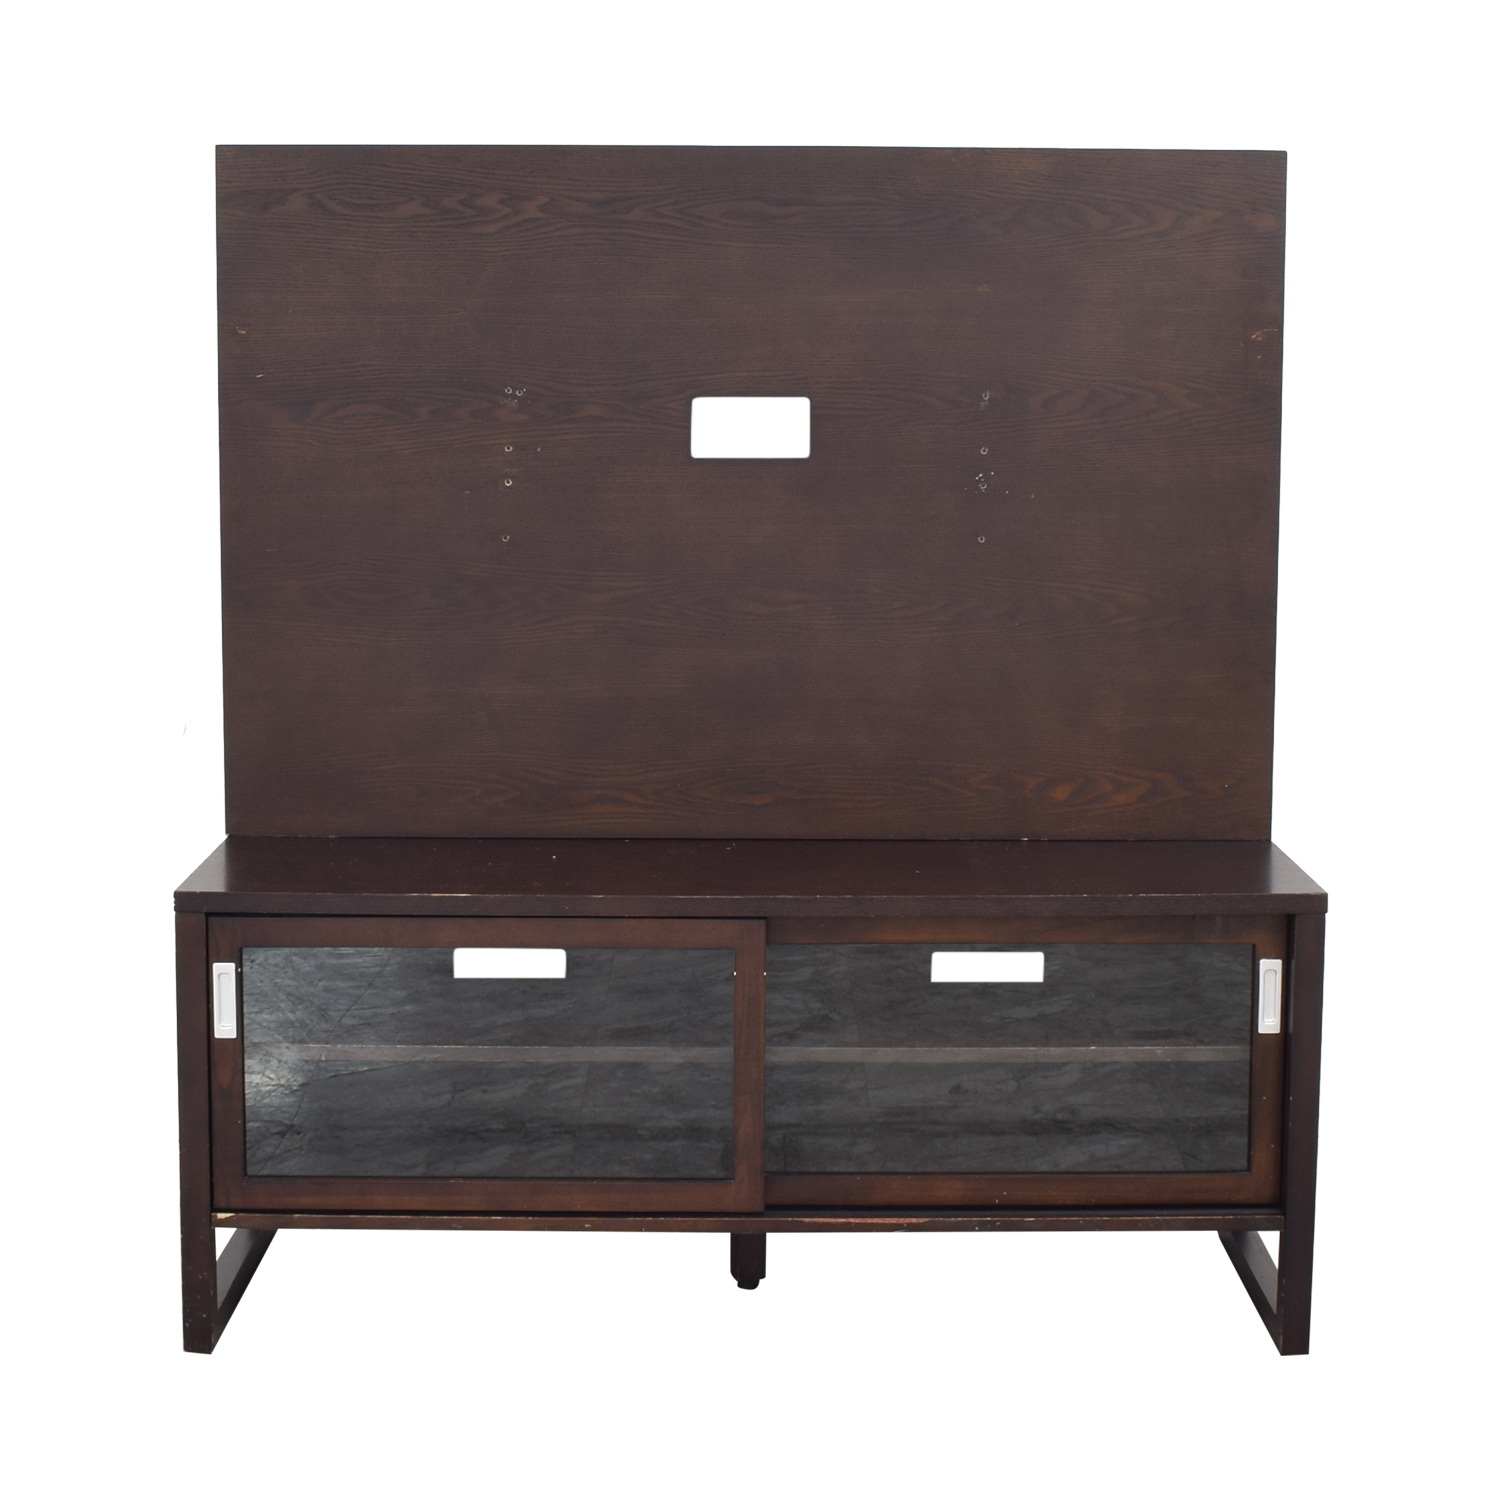 shop Crate & Barrel Entertainment Console with Back Panel Crate & Barrel Media Units